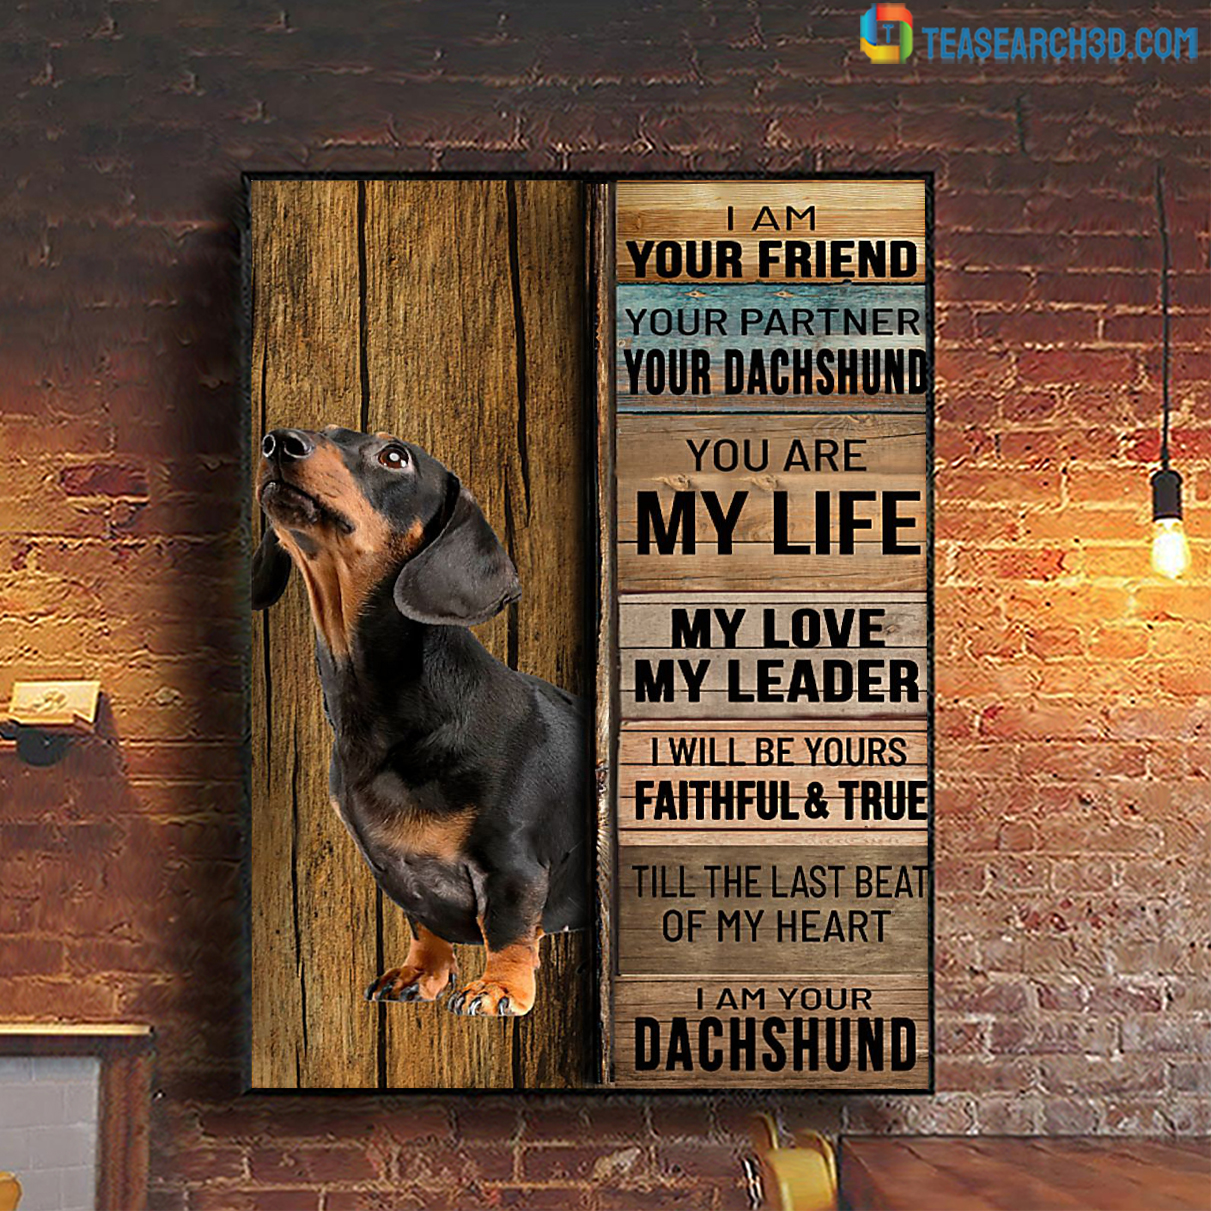 Dachshund I am your friend your partner poster